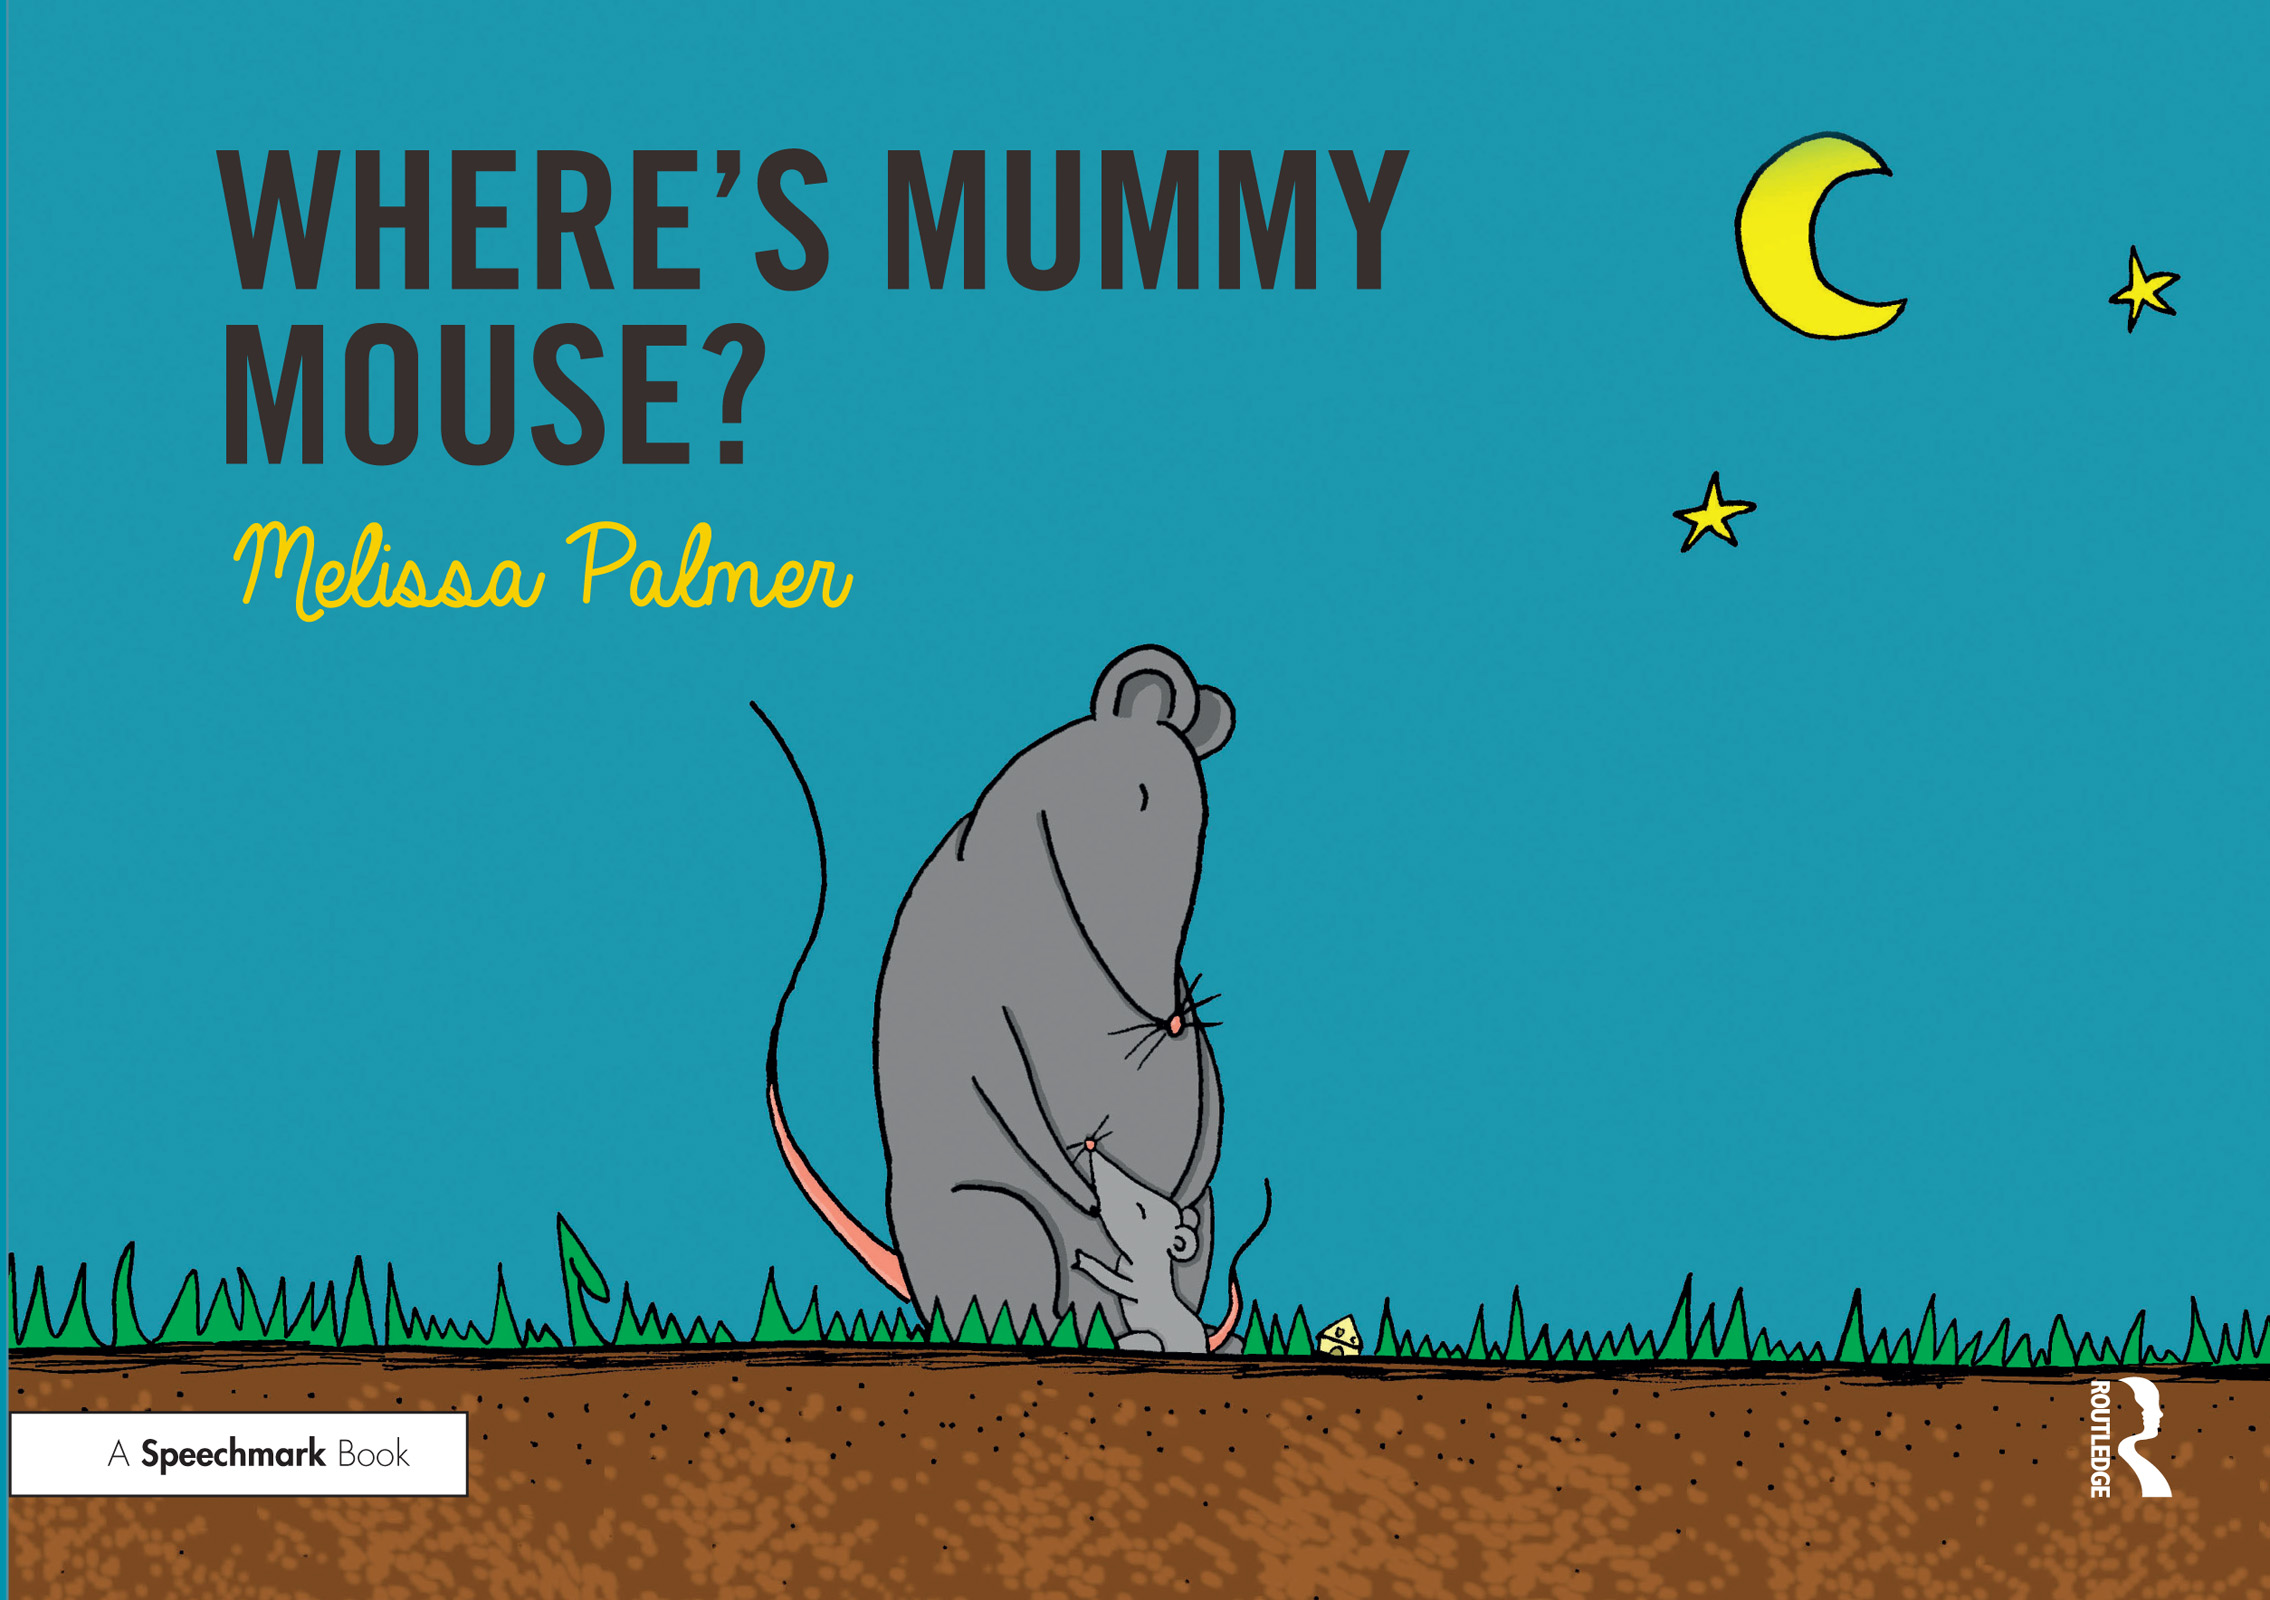 Where's Mummy Mouse? book cover